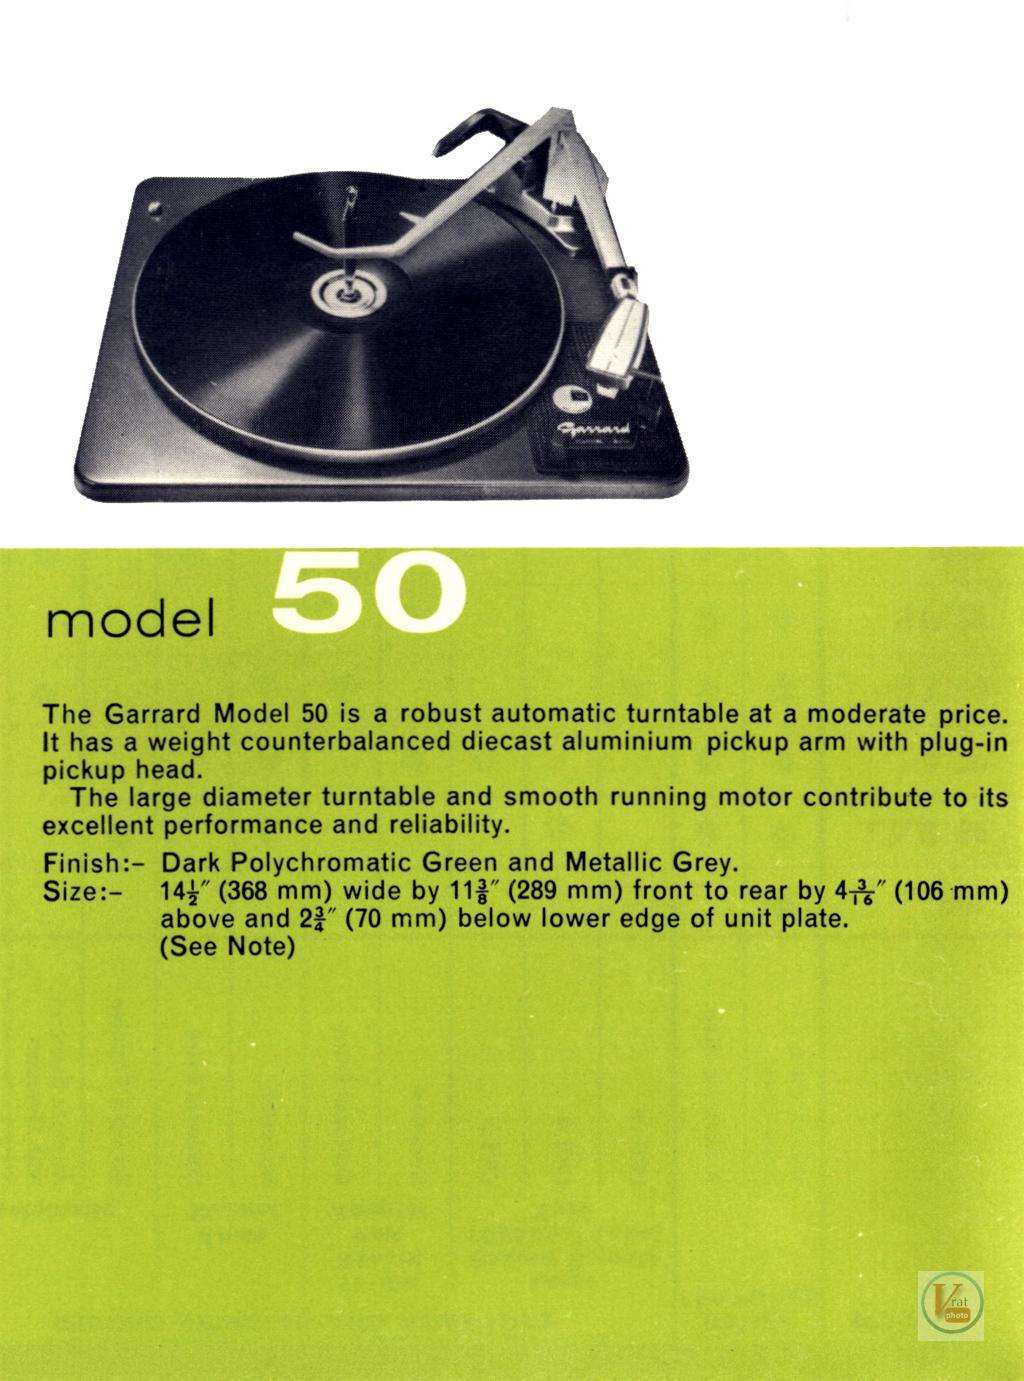 Garrard-401 Turntable 55